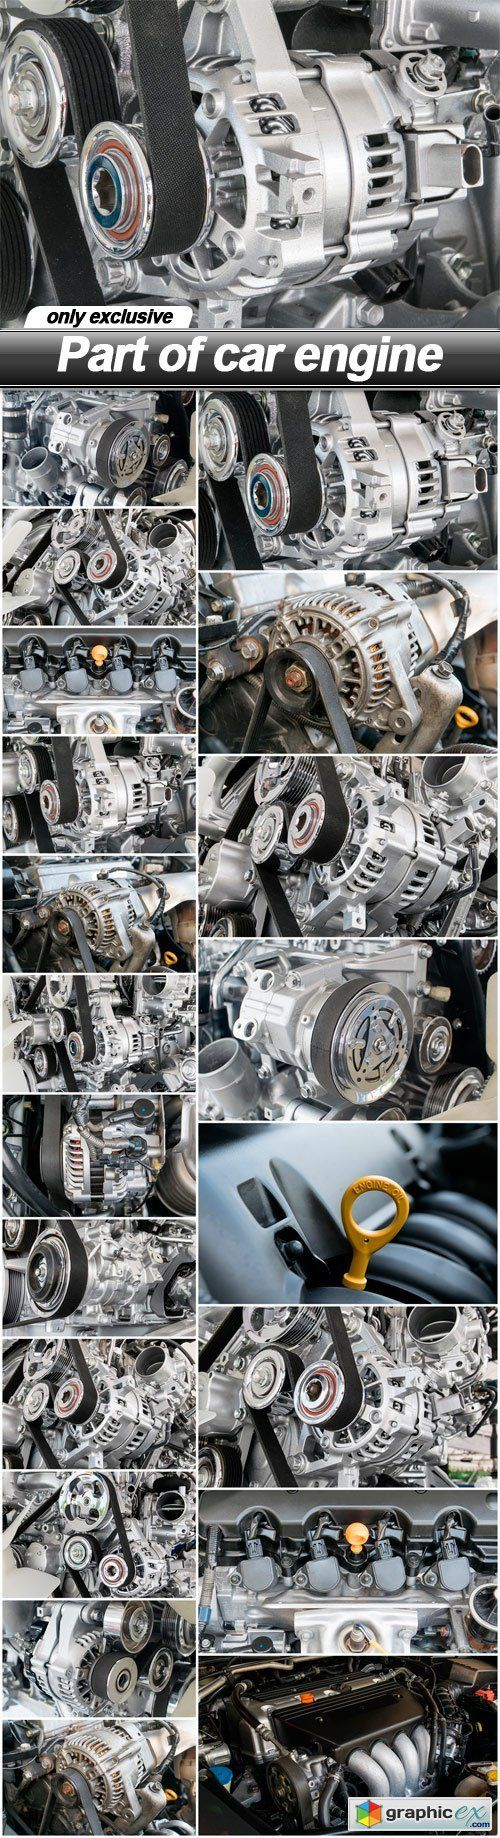 http://graphicex.com/stock-image/stock-verhicles-transport/72338-part-of-car-engine-20-uhq-jpeg.html